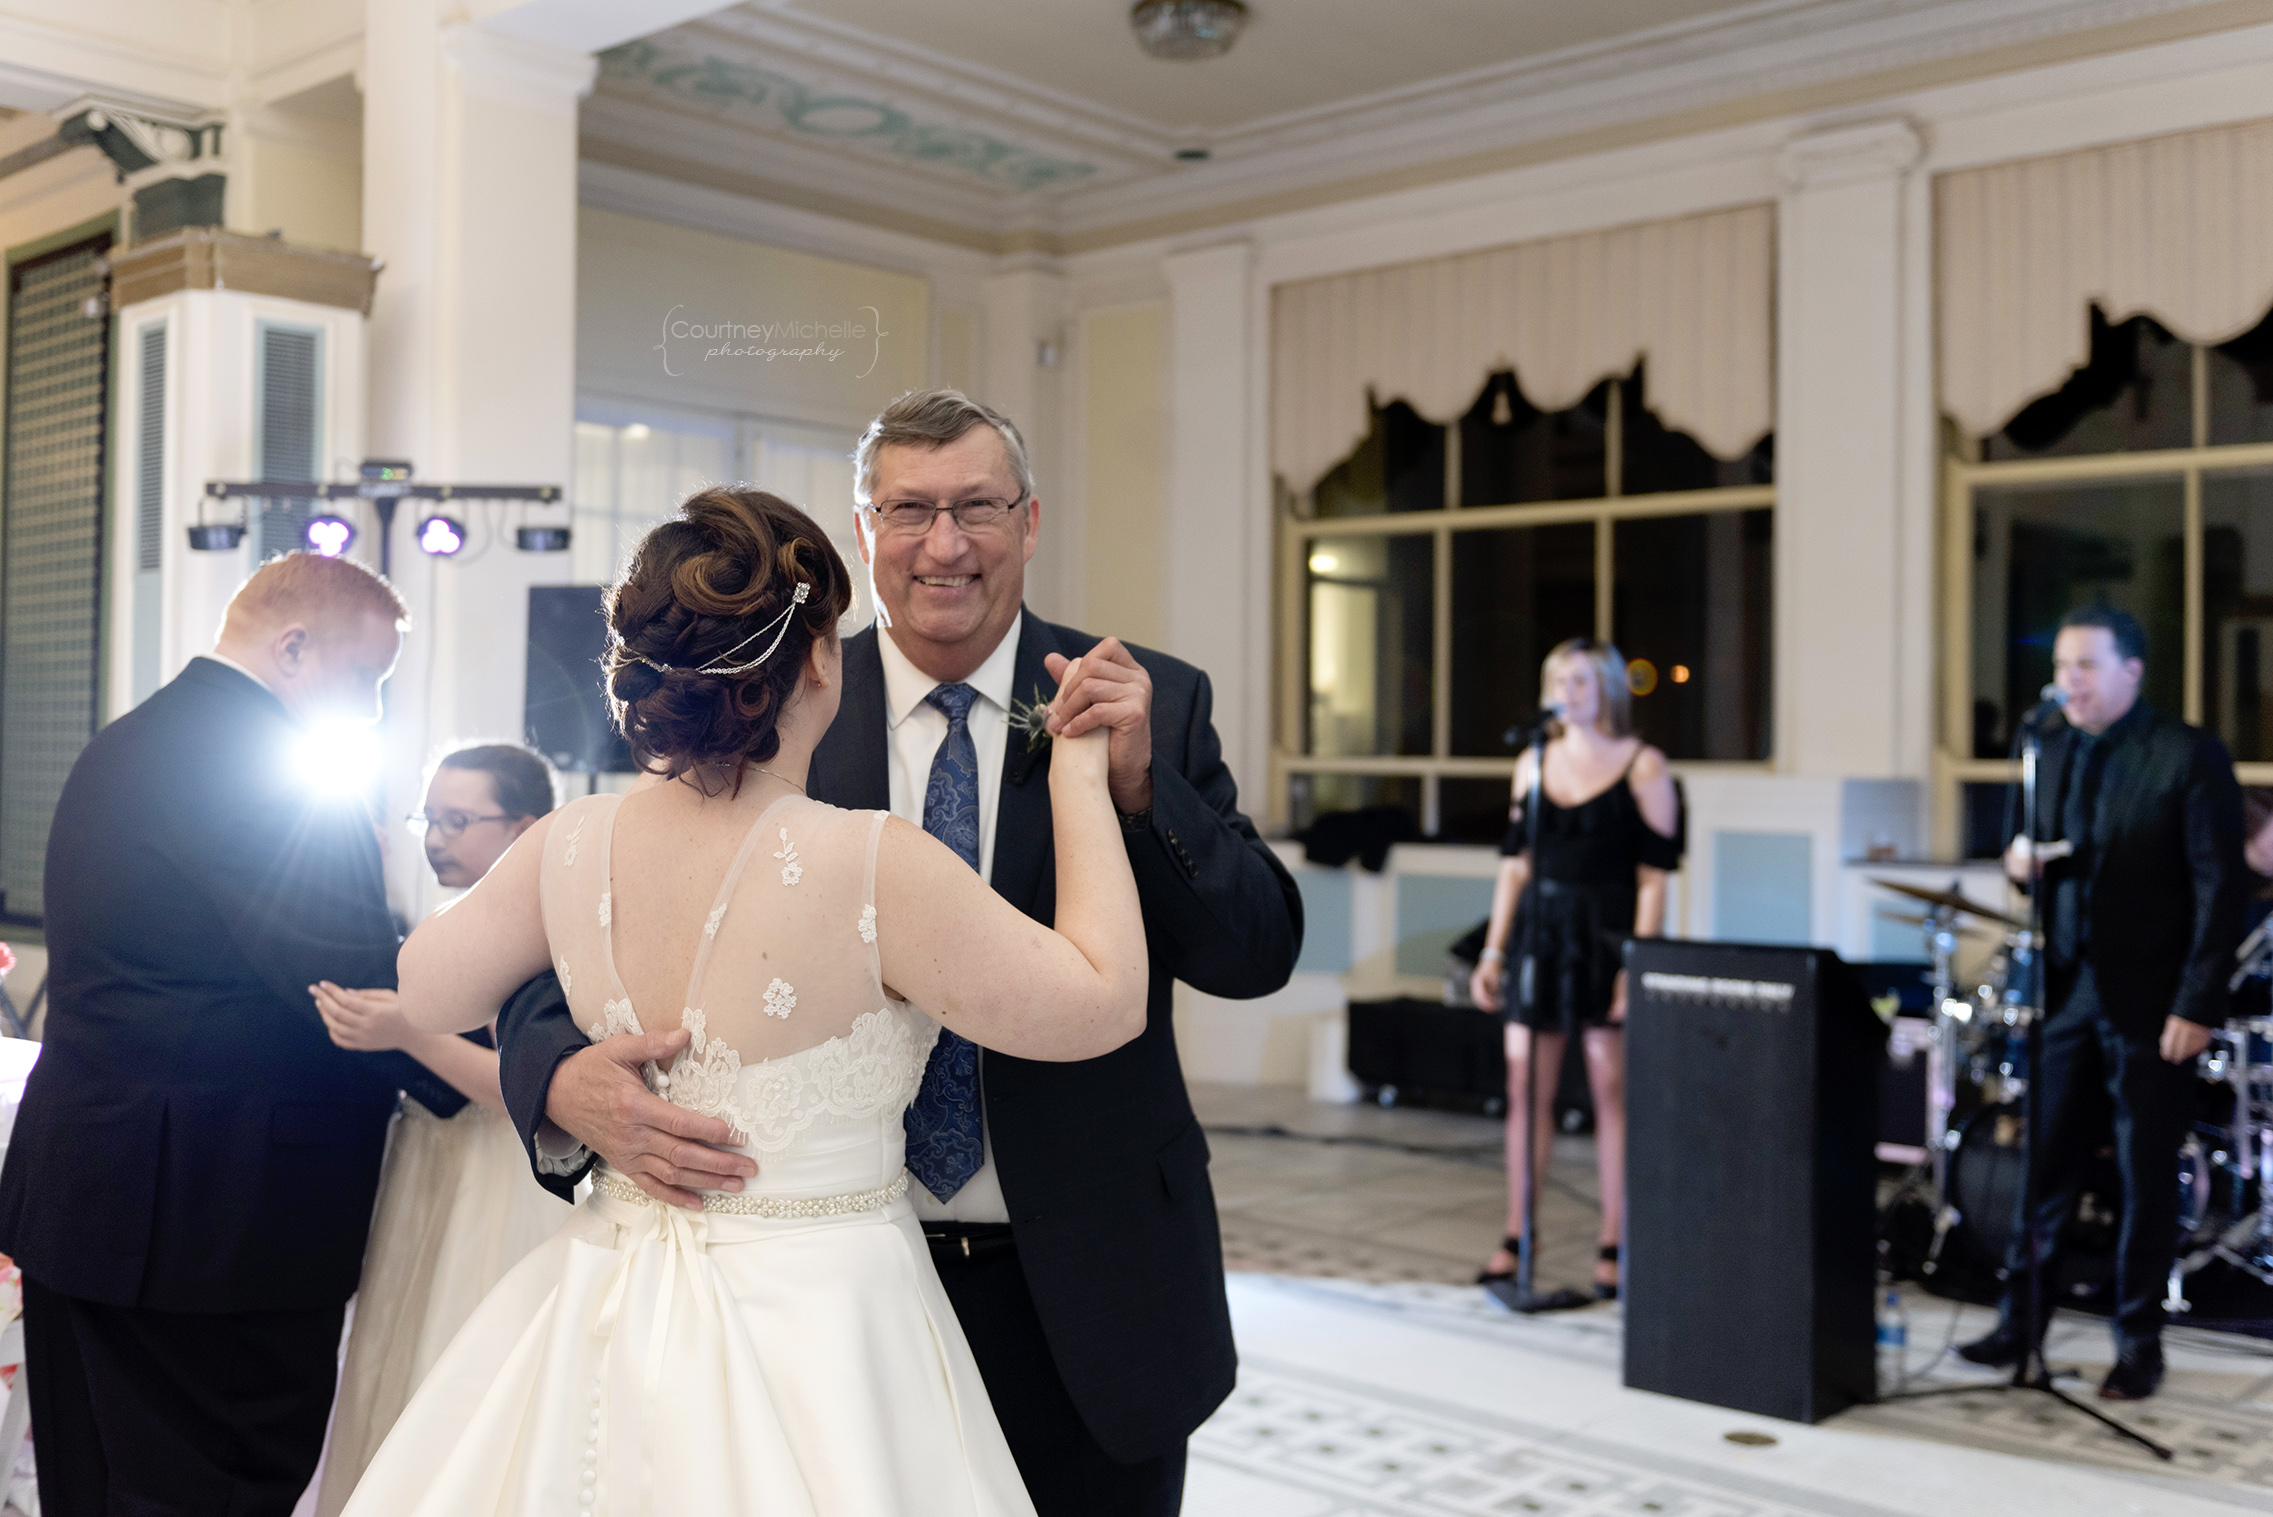 chicago-wedding-photographer-south-shore-cultural-center-father-daughter-dance